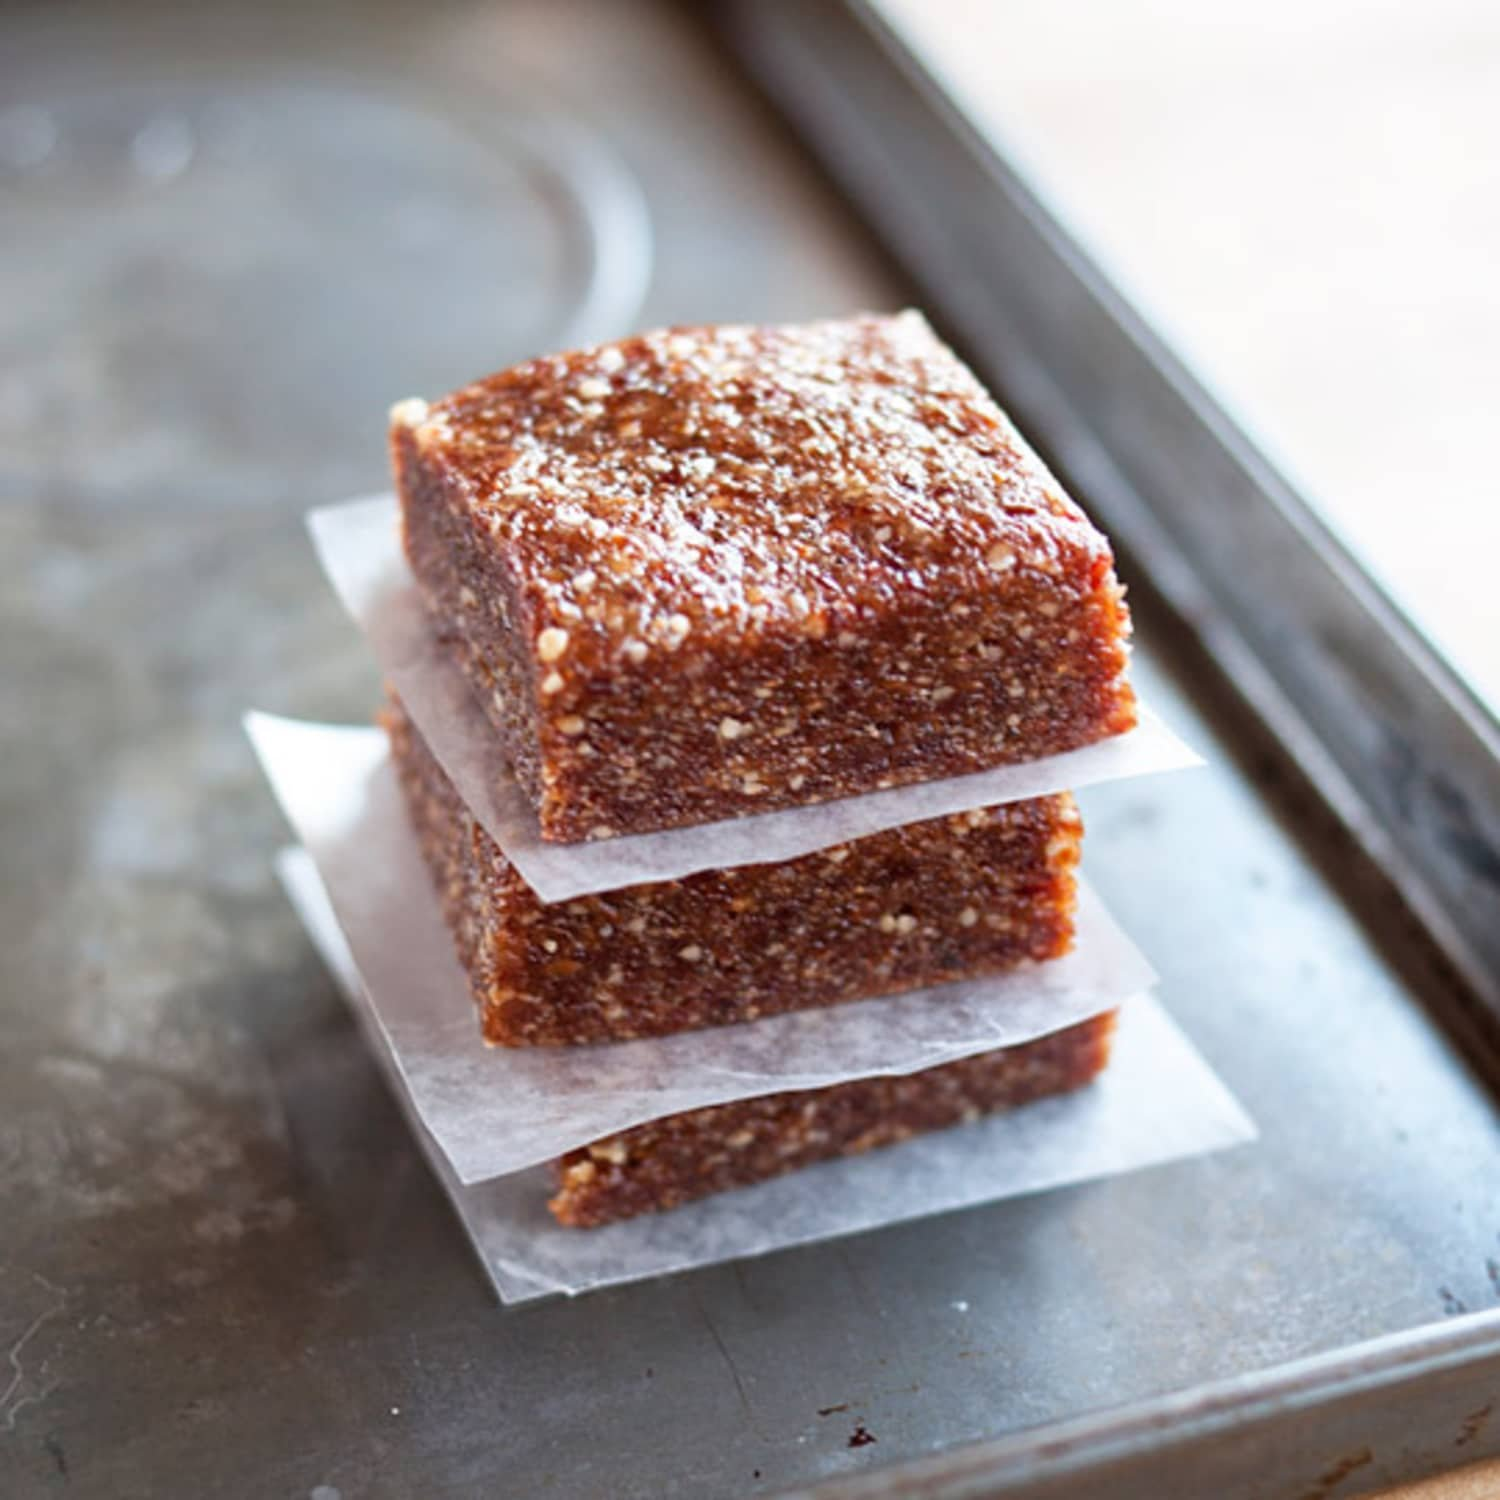 How To Make 3-Ingredient Energy Bars at Home